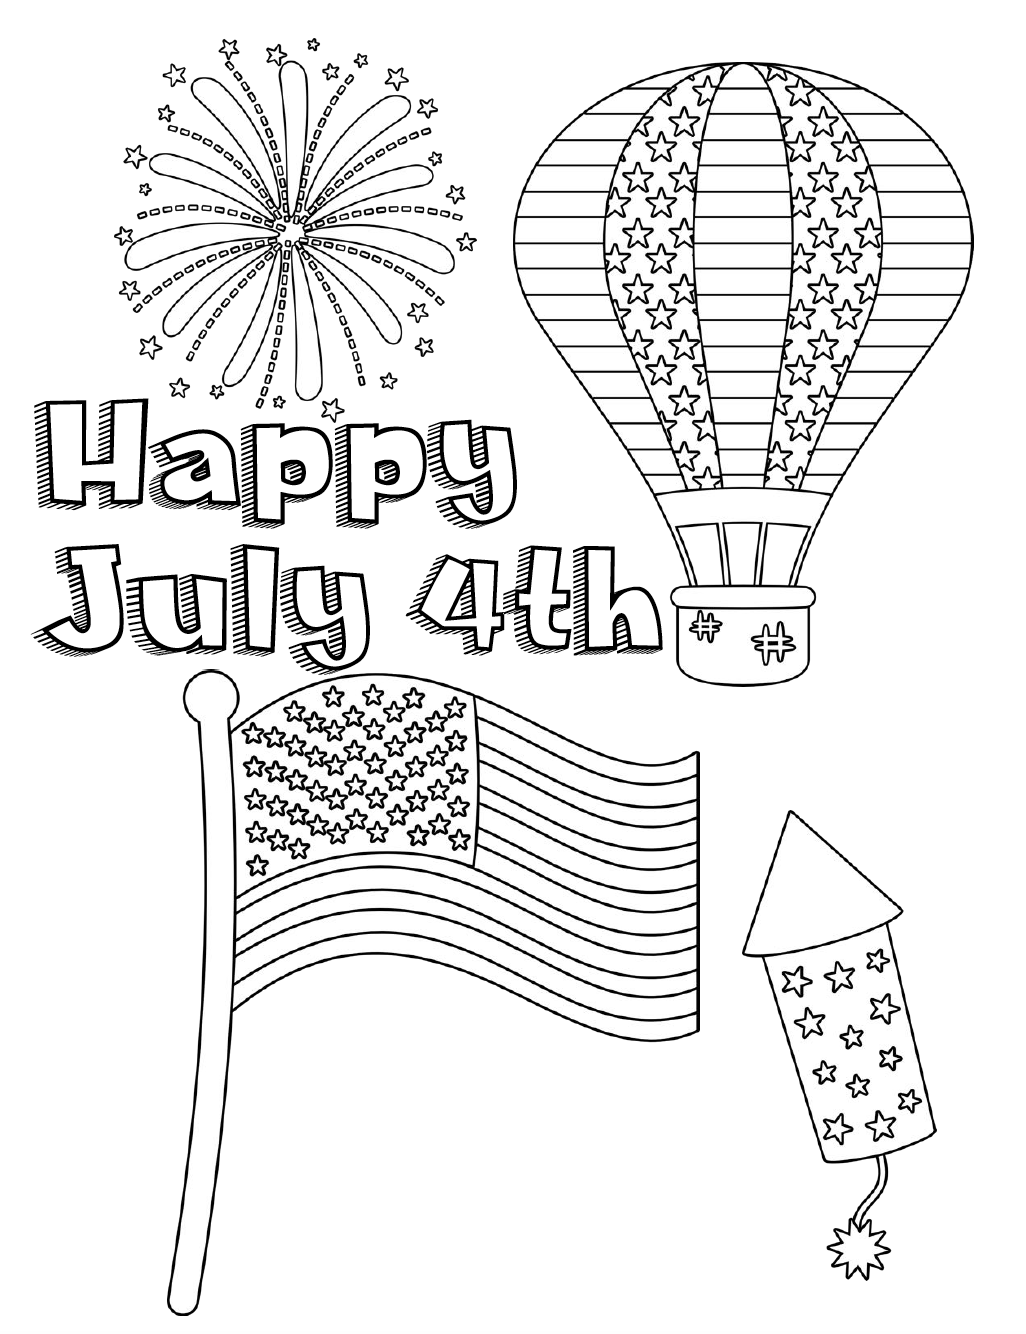 coloring pictures 4th of july ausmalbilder für kinder malvorlagen und malbuch 4th of pictures coloring july of 4th